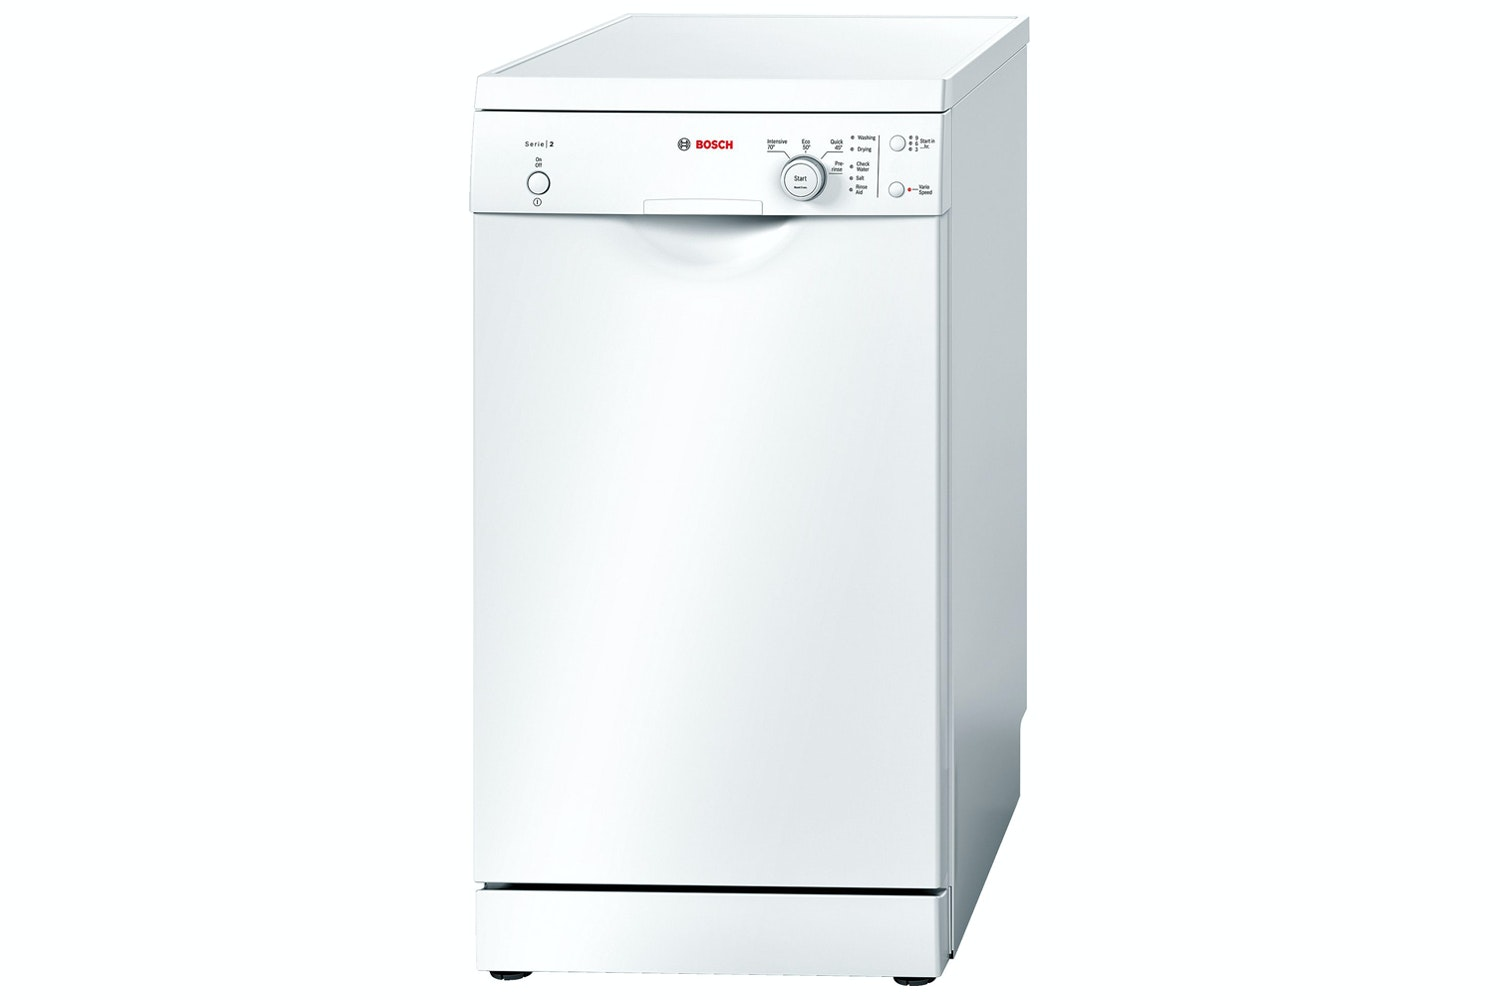 Bosch 9 Place Slimline Dishwasher | SPS40E32GB